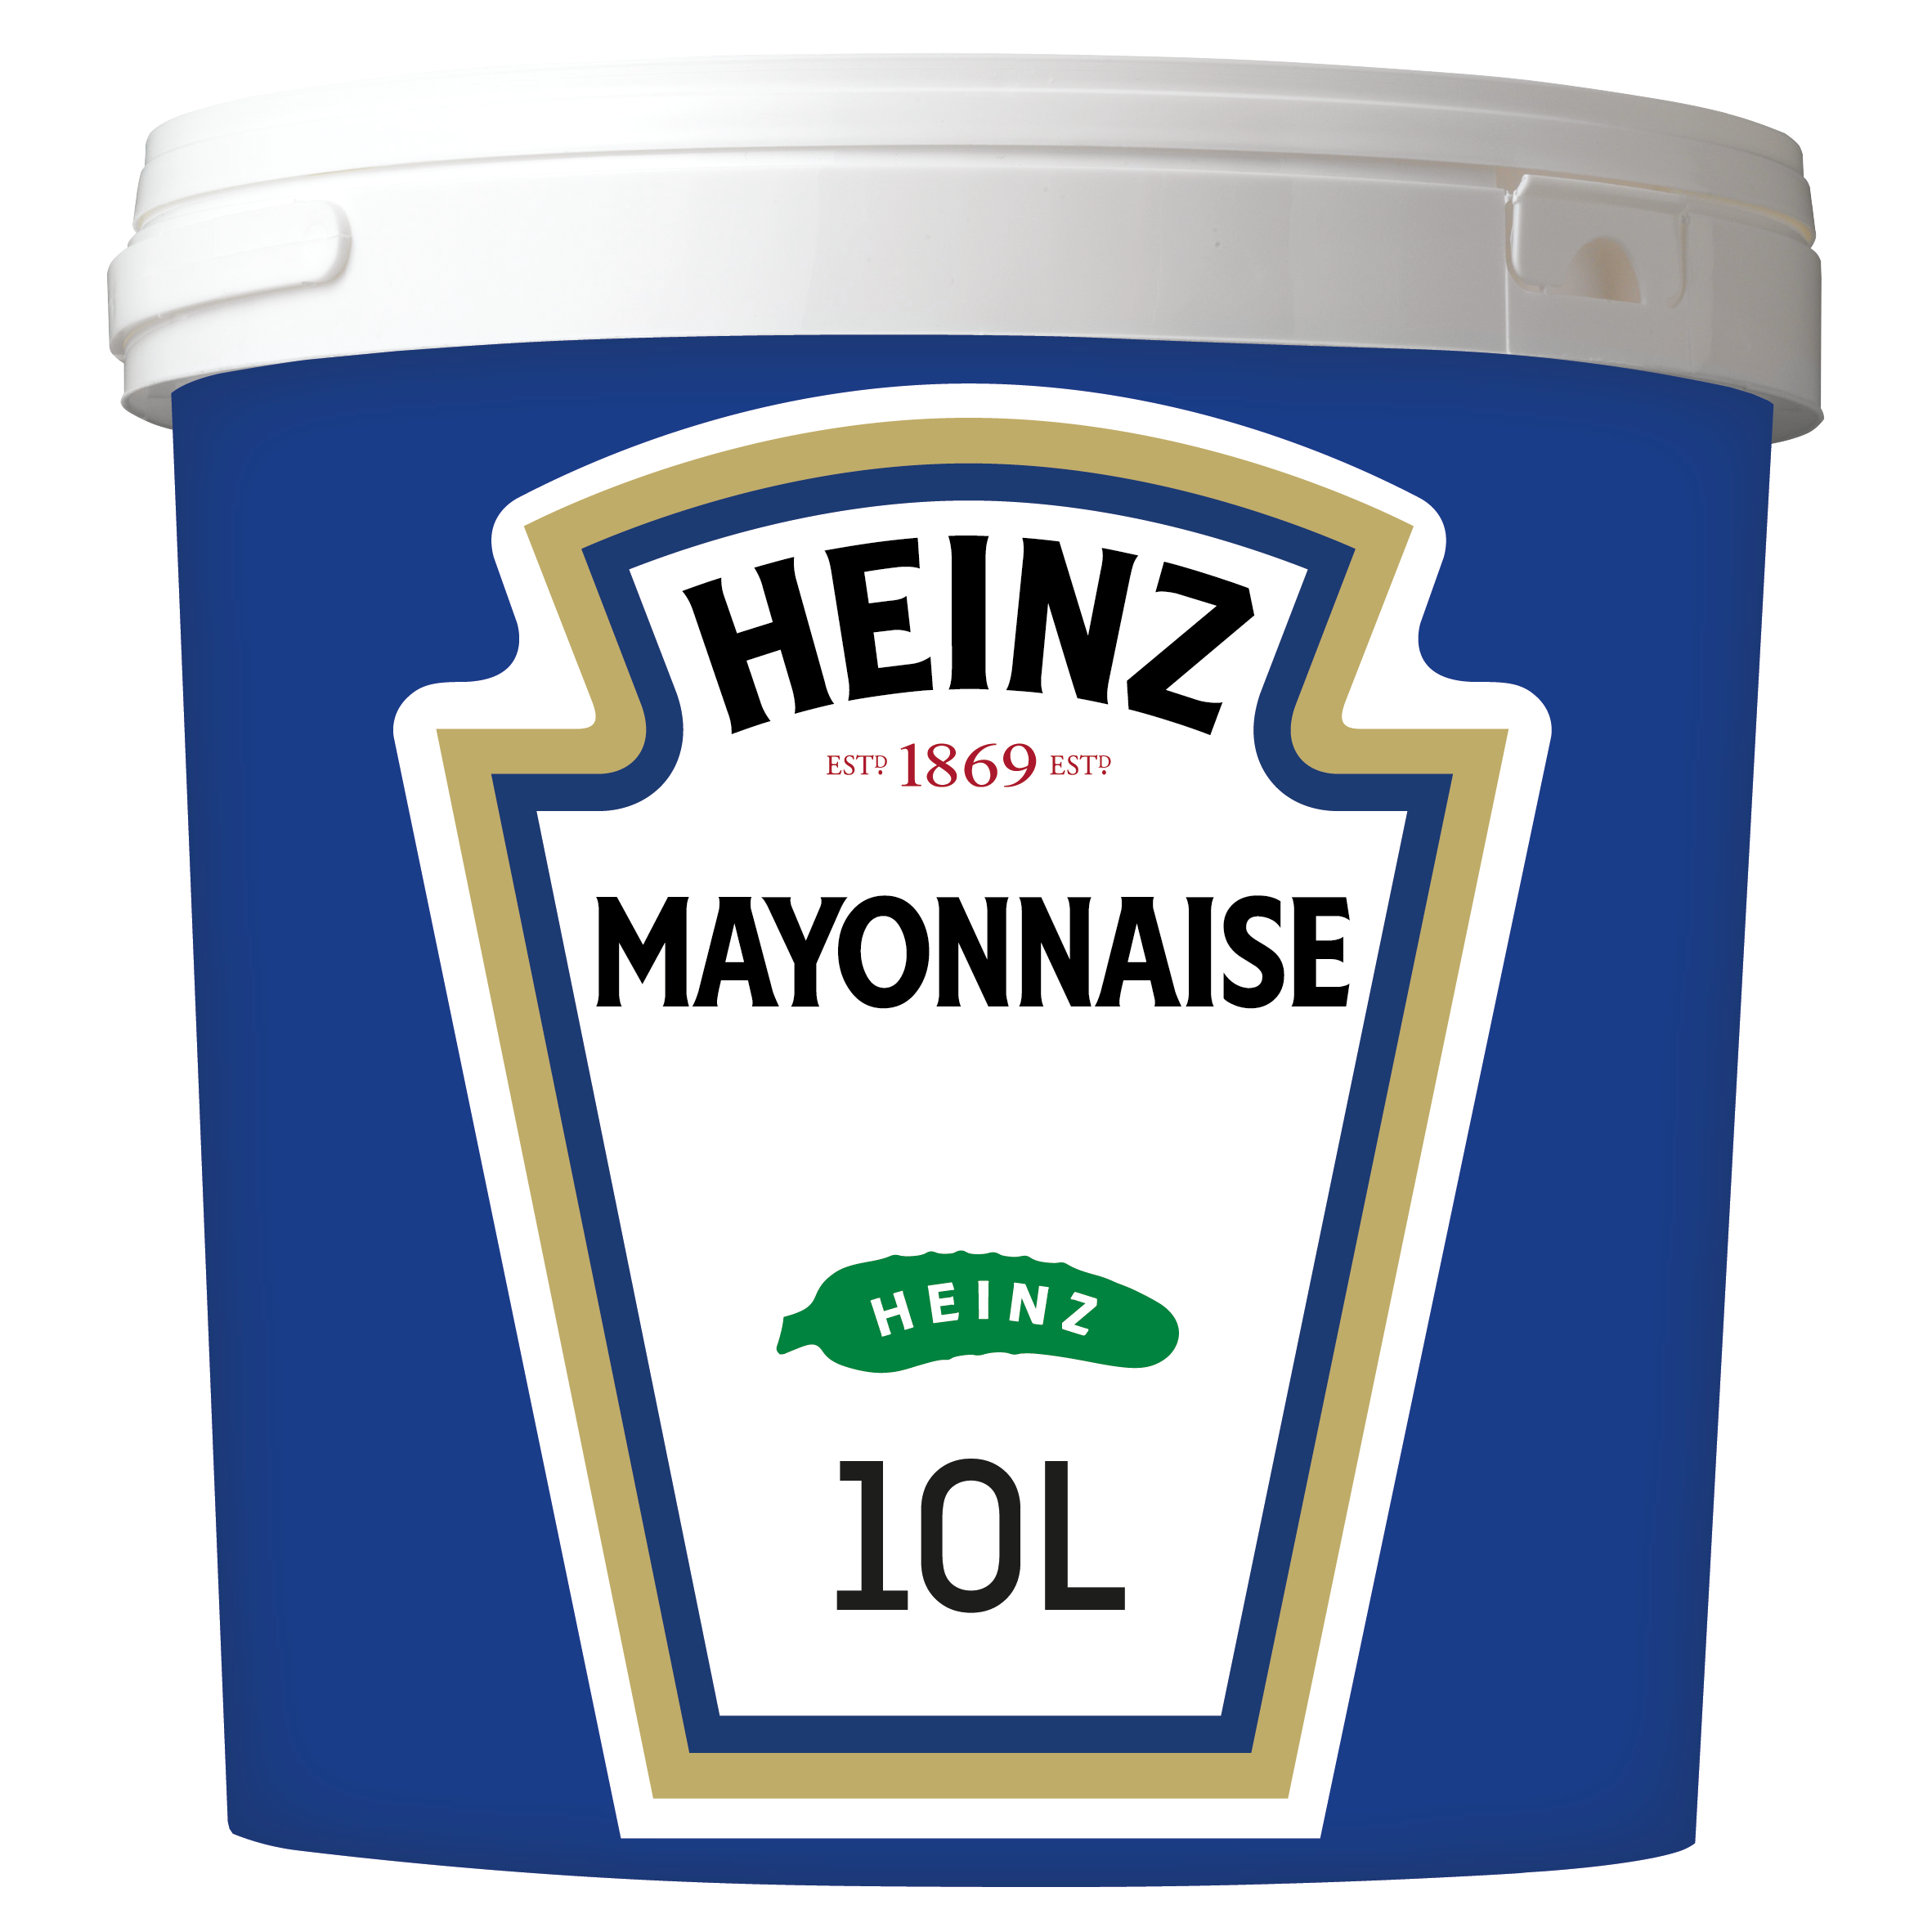 Heinz Mayonnaise 10L image